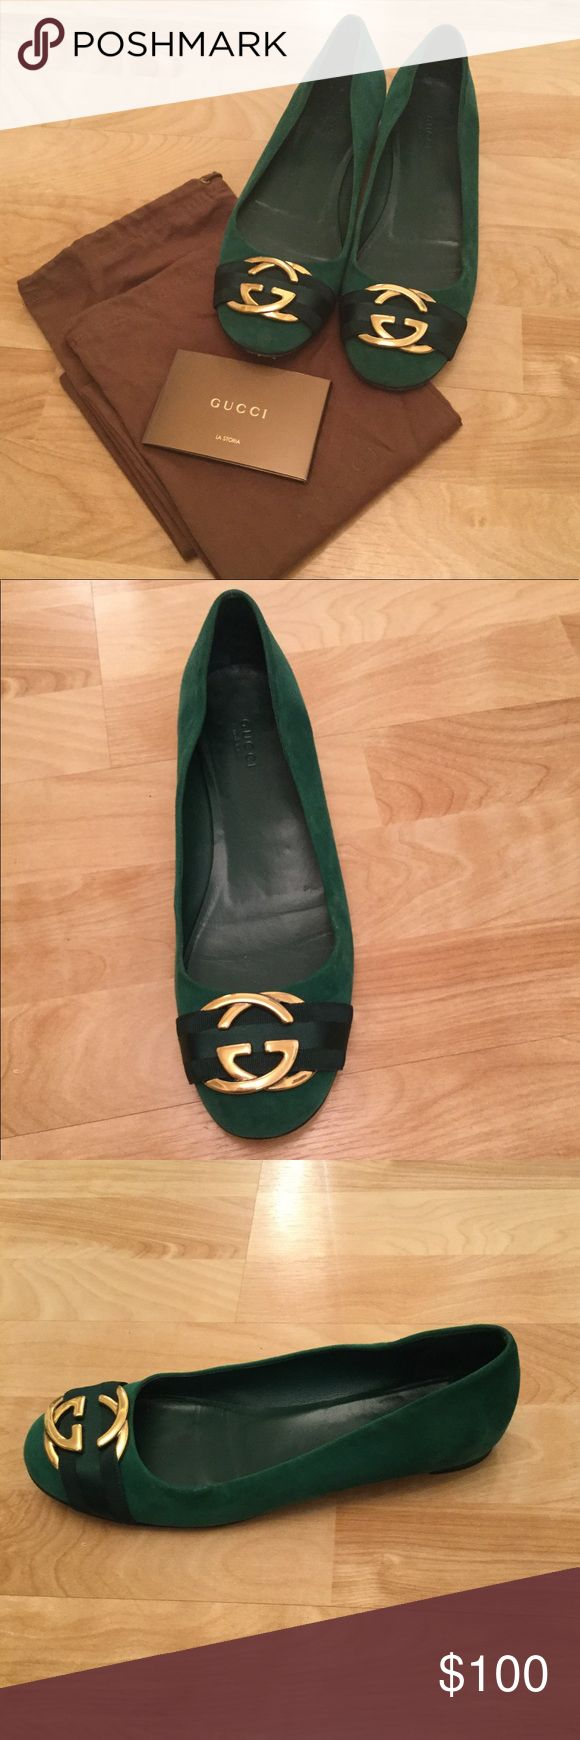 Emerald Green Gucci Flats Attention: GREAT DEAL!!!! Authentic gucci flats in a gorgeous green suede materail and gold logo. Perfect for everday! Great price and comes with two original dustbags!!!! 🌸 Gucci Shoes Flats & Loafers